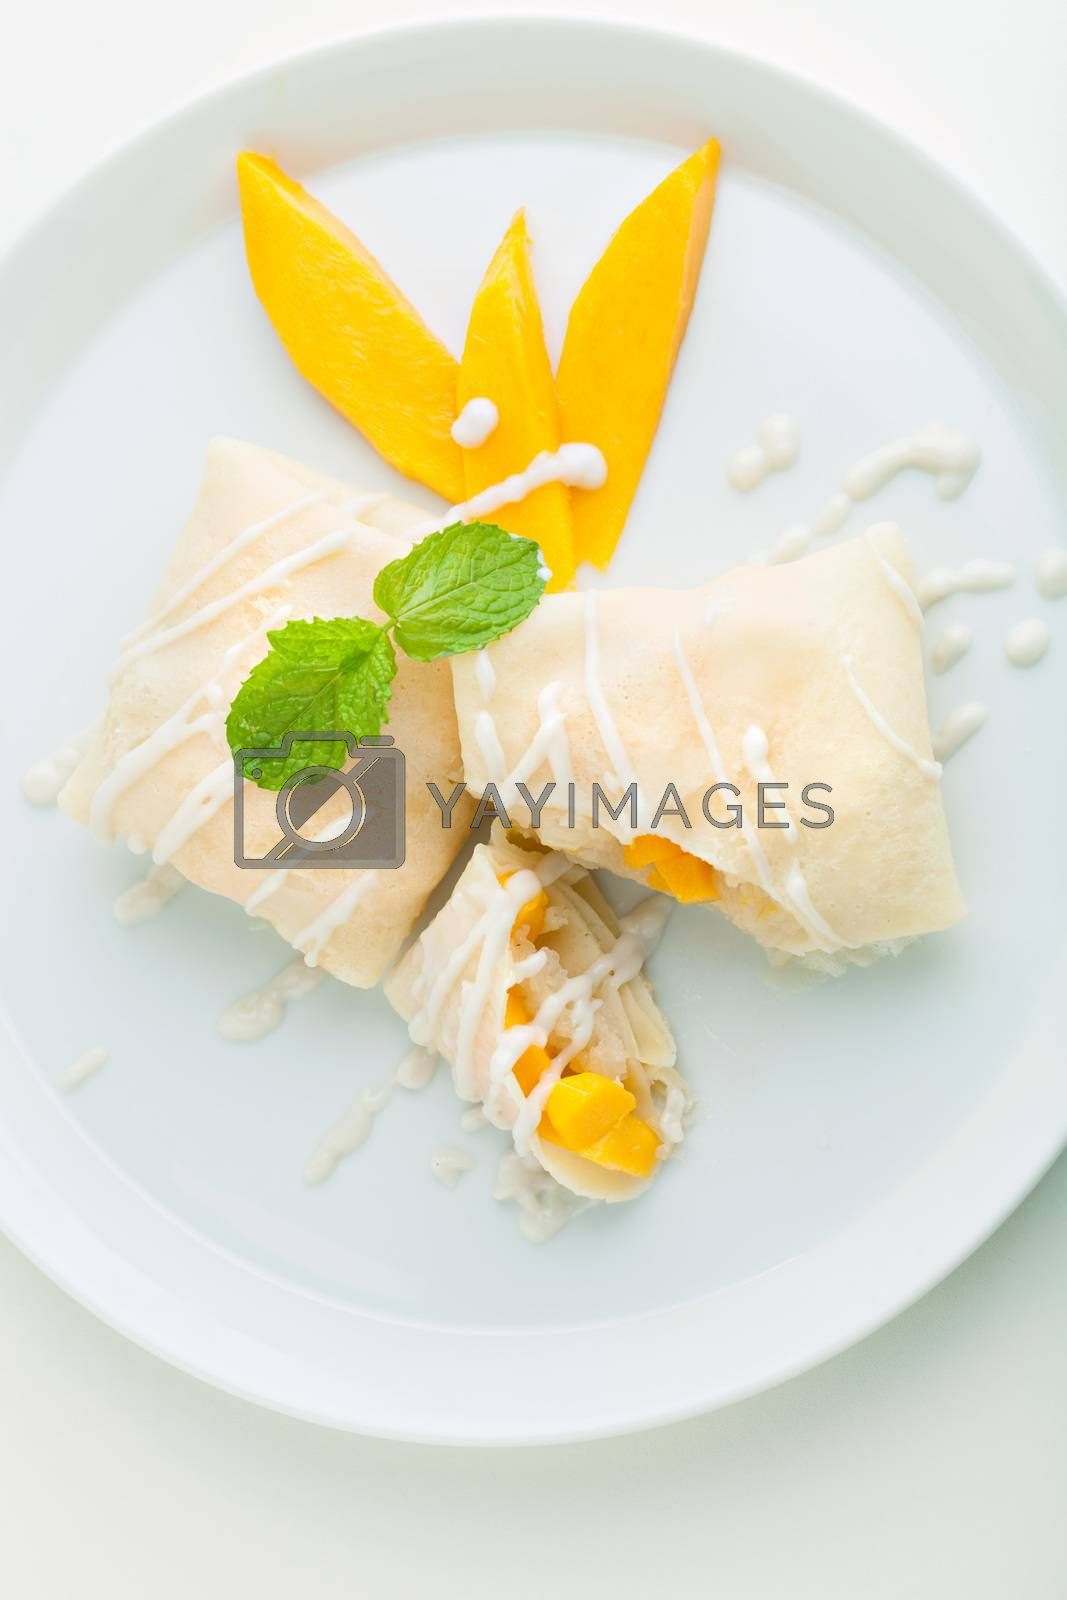 Thai style tropical dessert crepes filled with fresh mango and sticky rice. Top down overhead view.